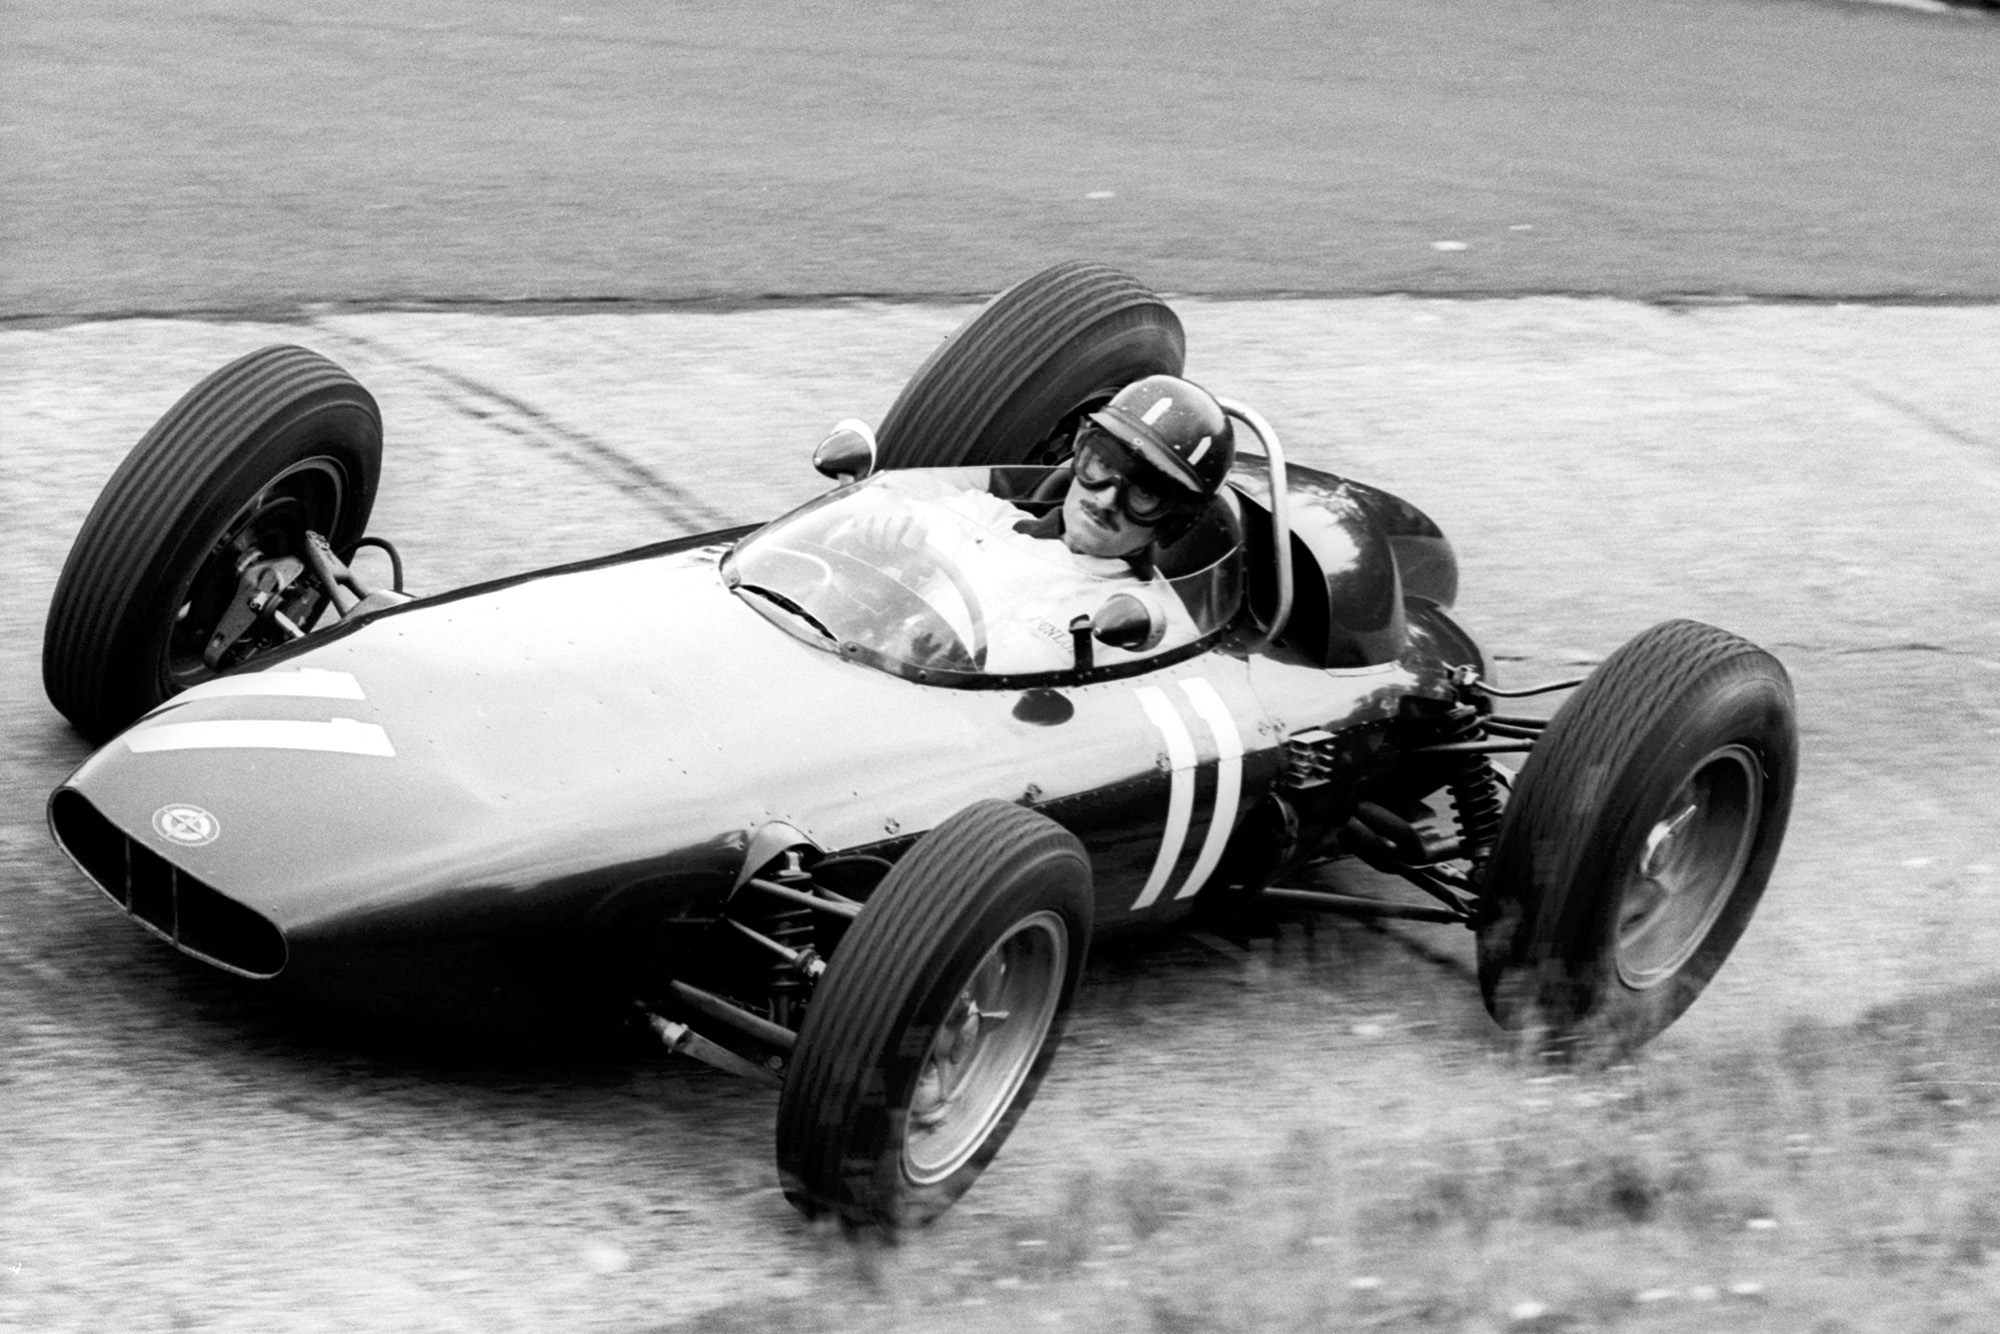 Hill put in a masterful performance in his BRM to win